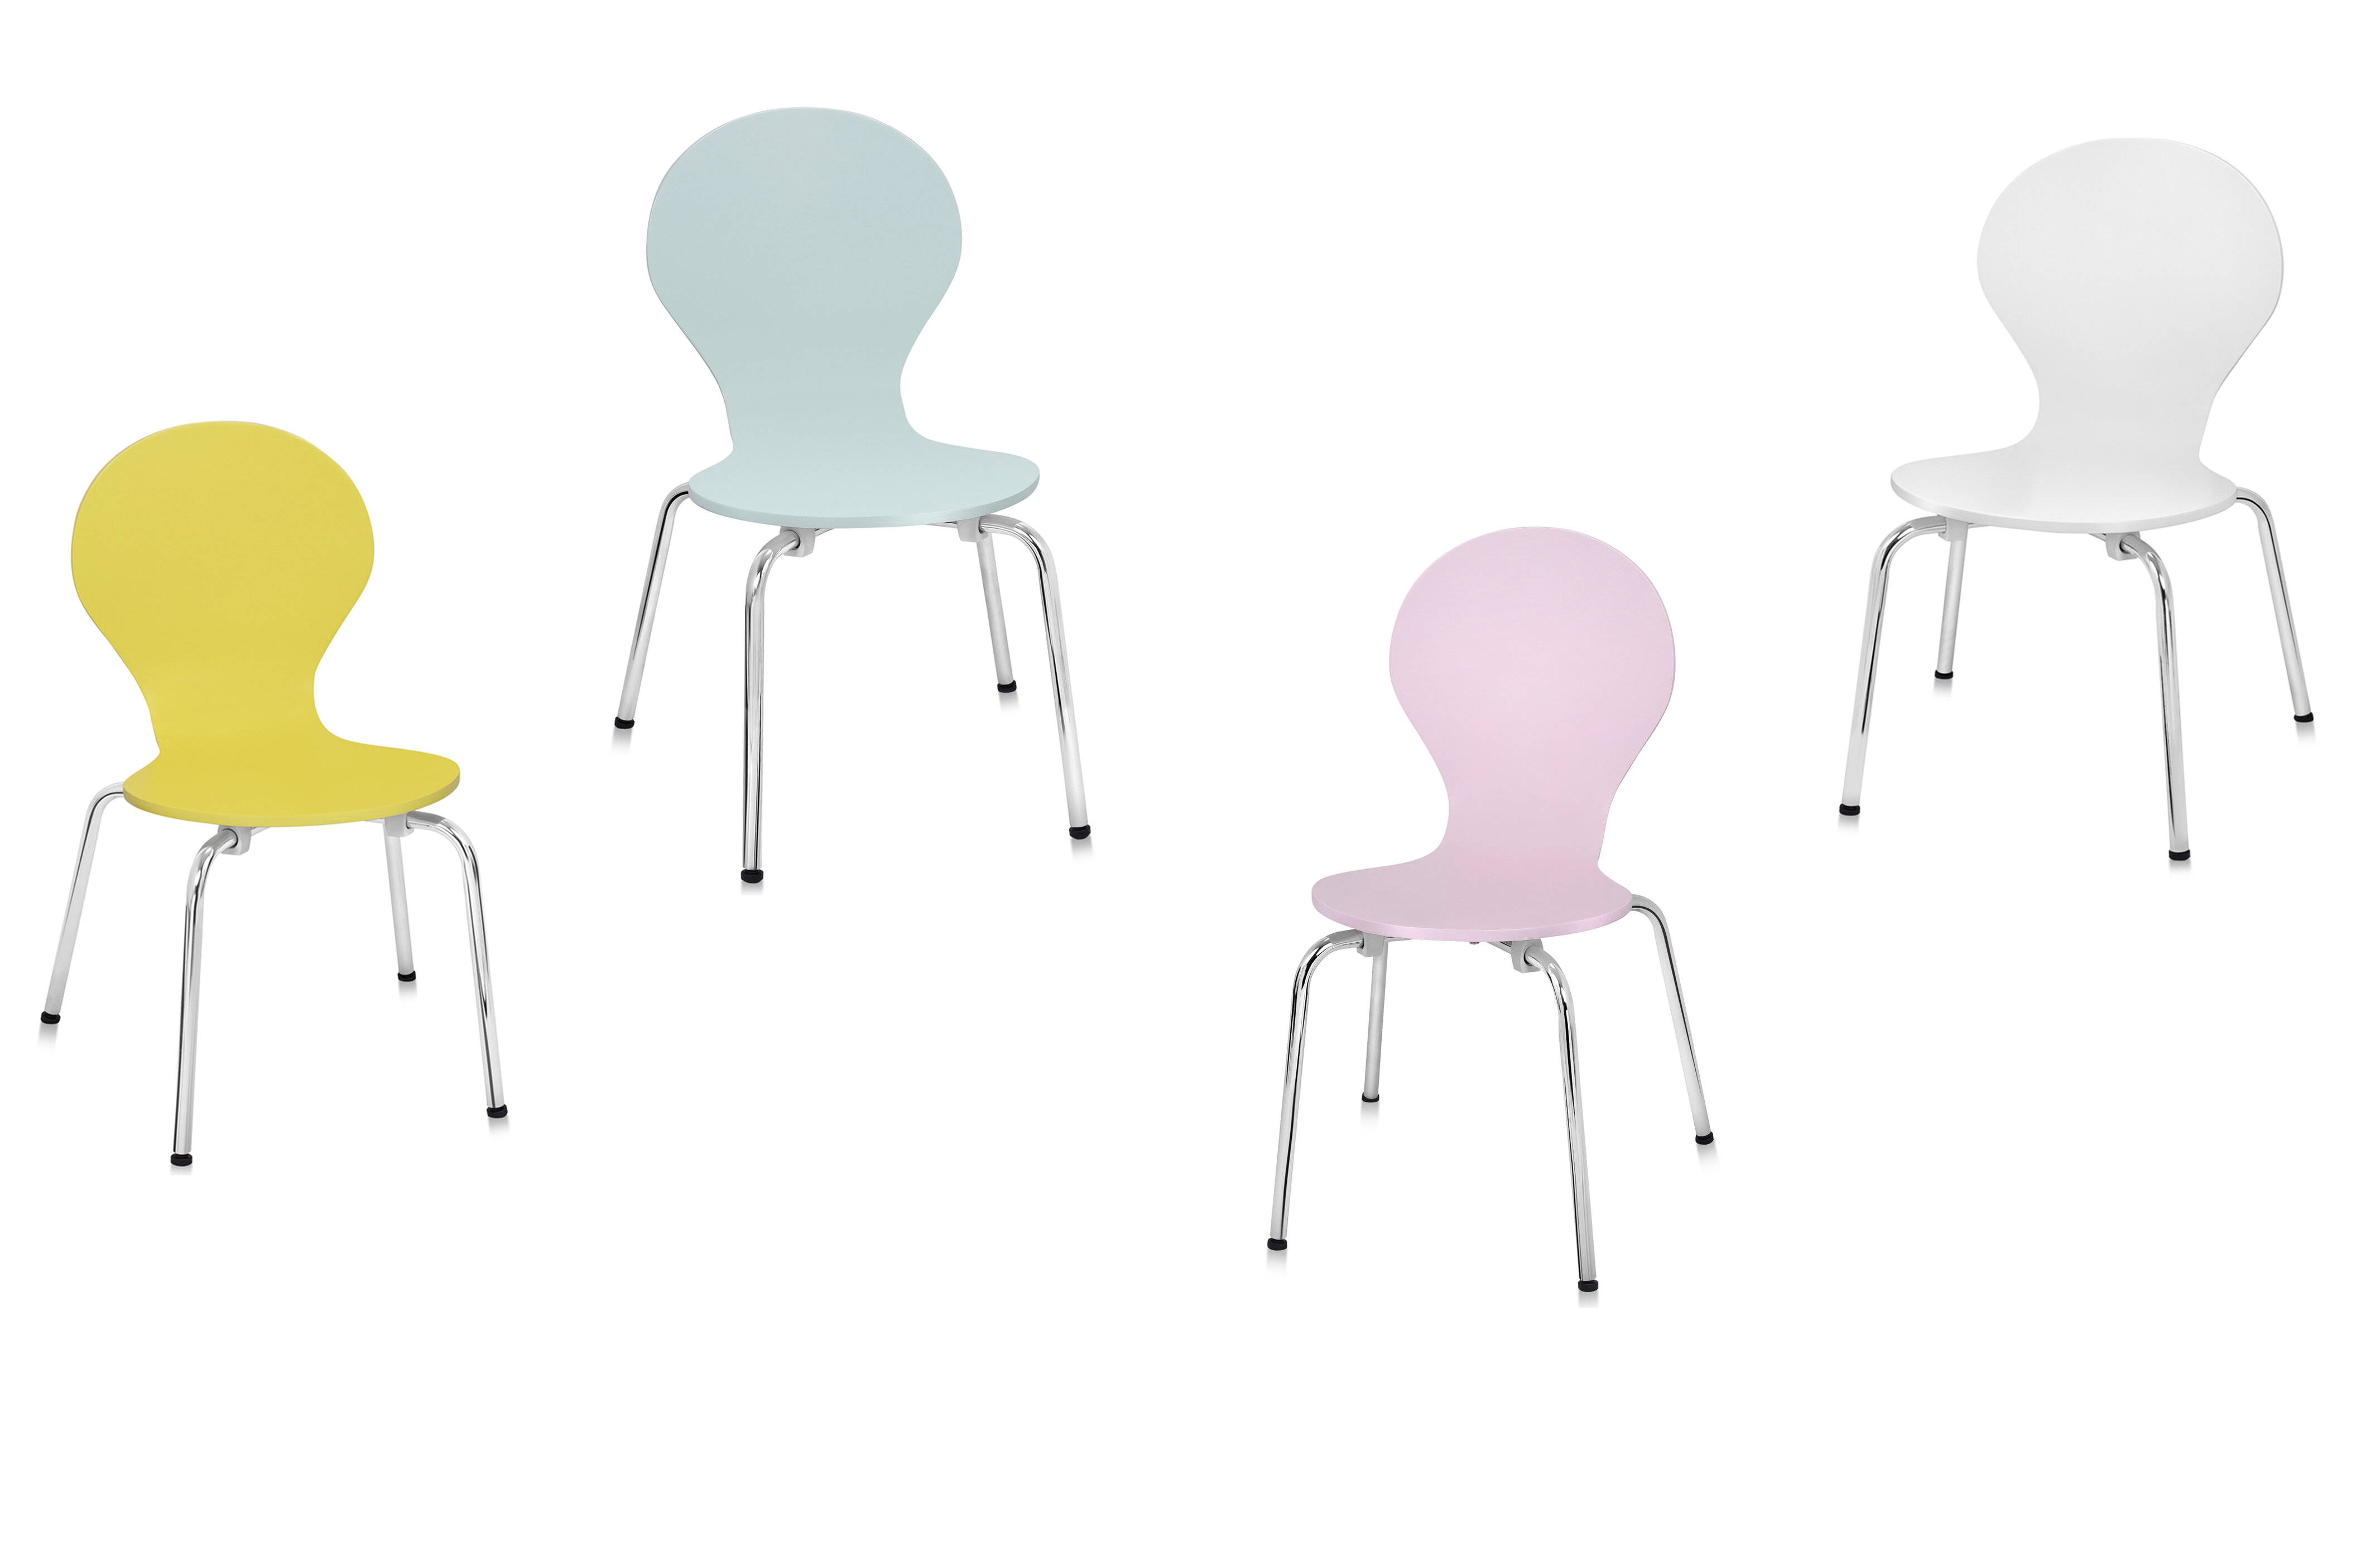 stainless for girls chairs frame teens desk little chair collections of furry bedroom new steel girl pink and bungee color in beautiful